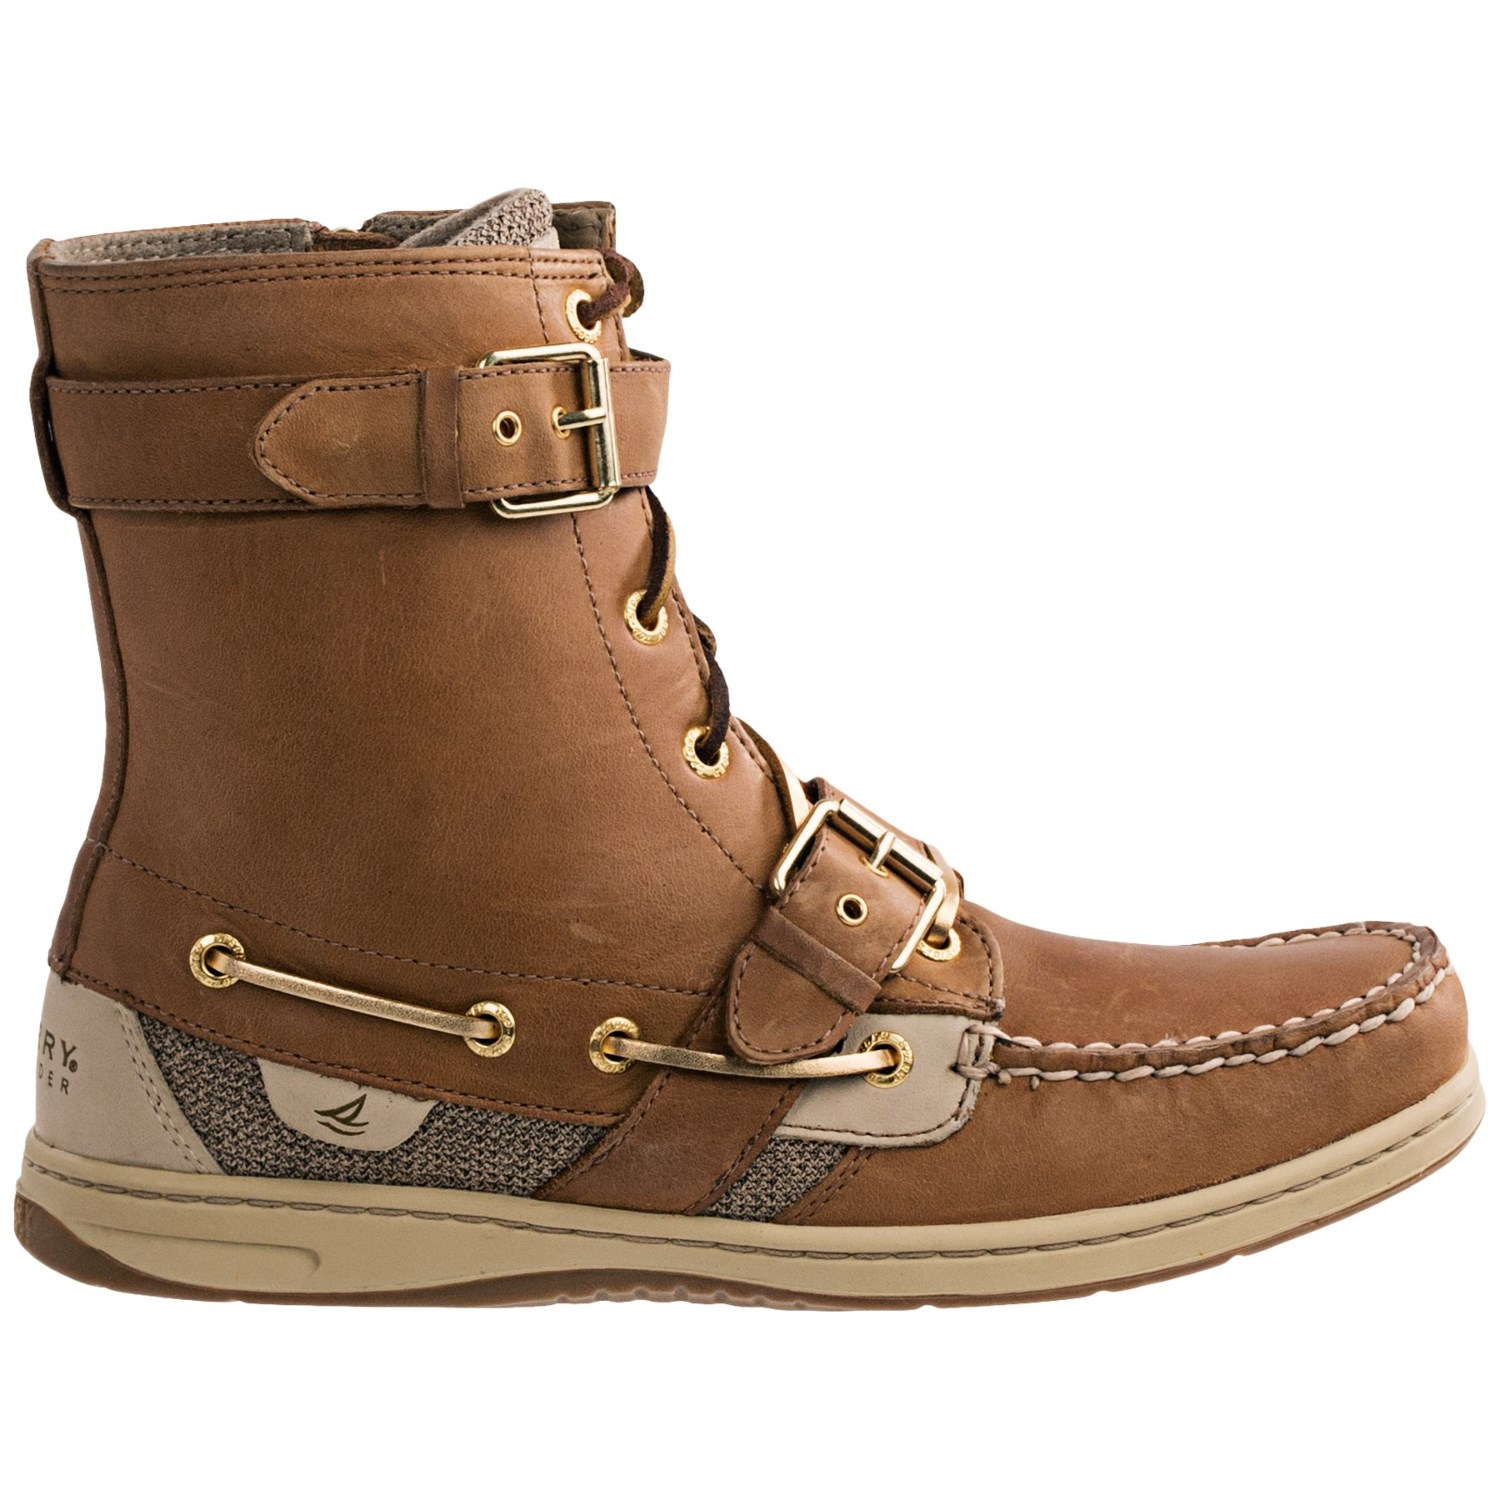 sperry top sider huntley boots for 7349j